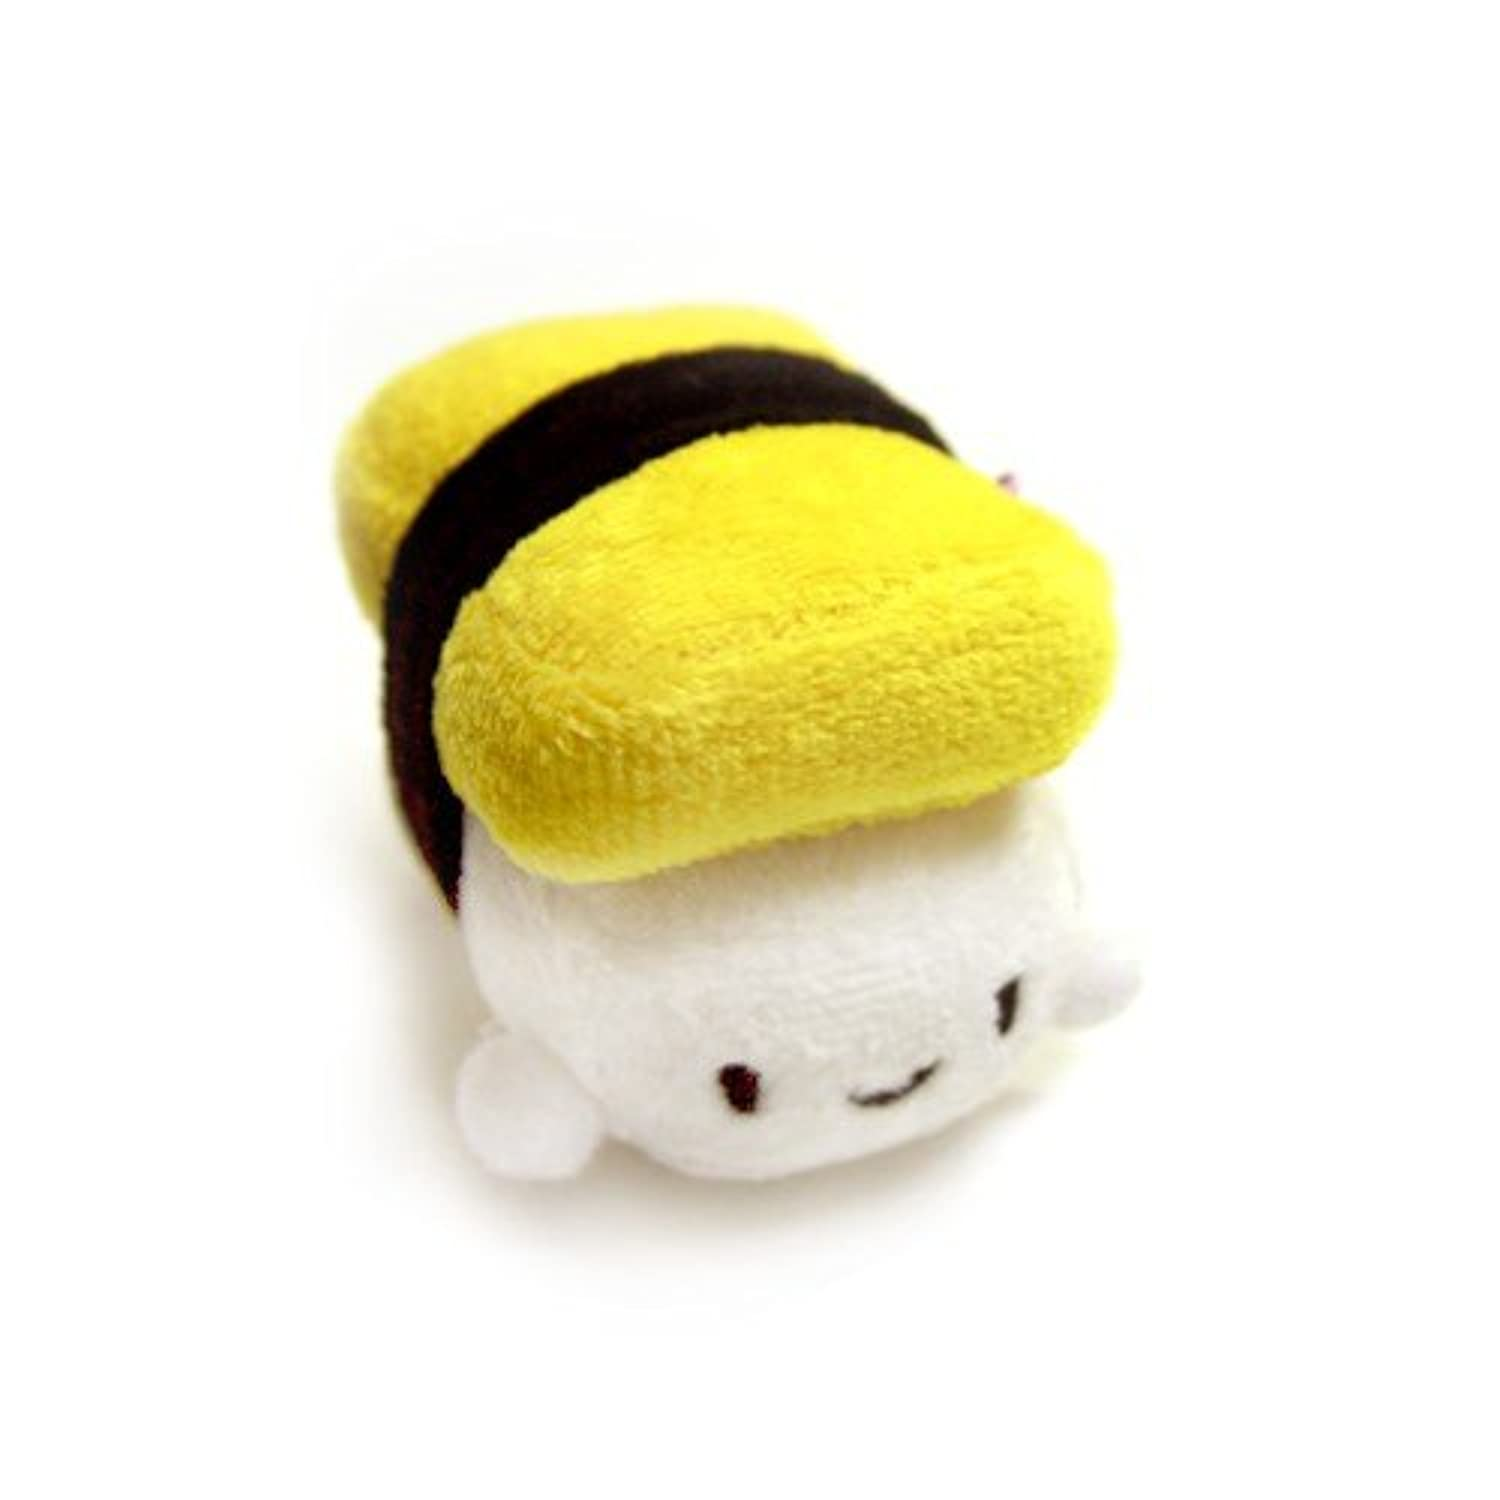 Phone Ring Toy - CHOBA Egg Sushi 6cm